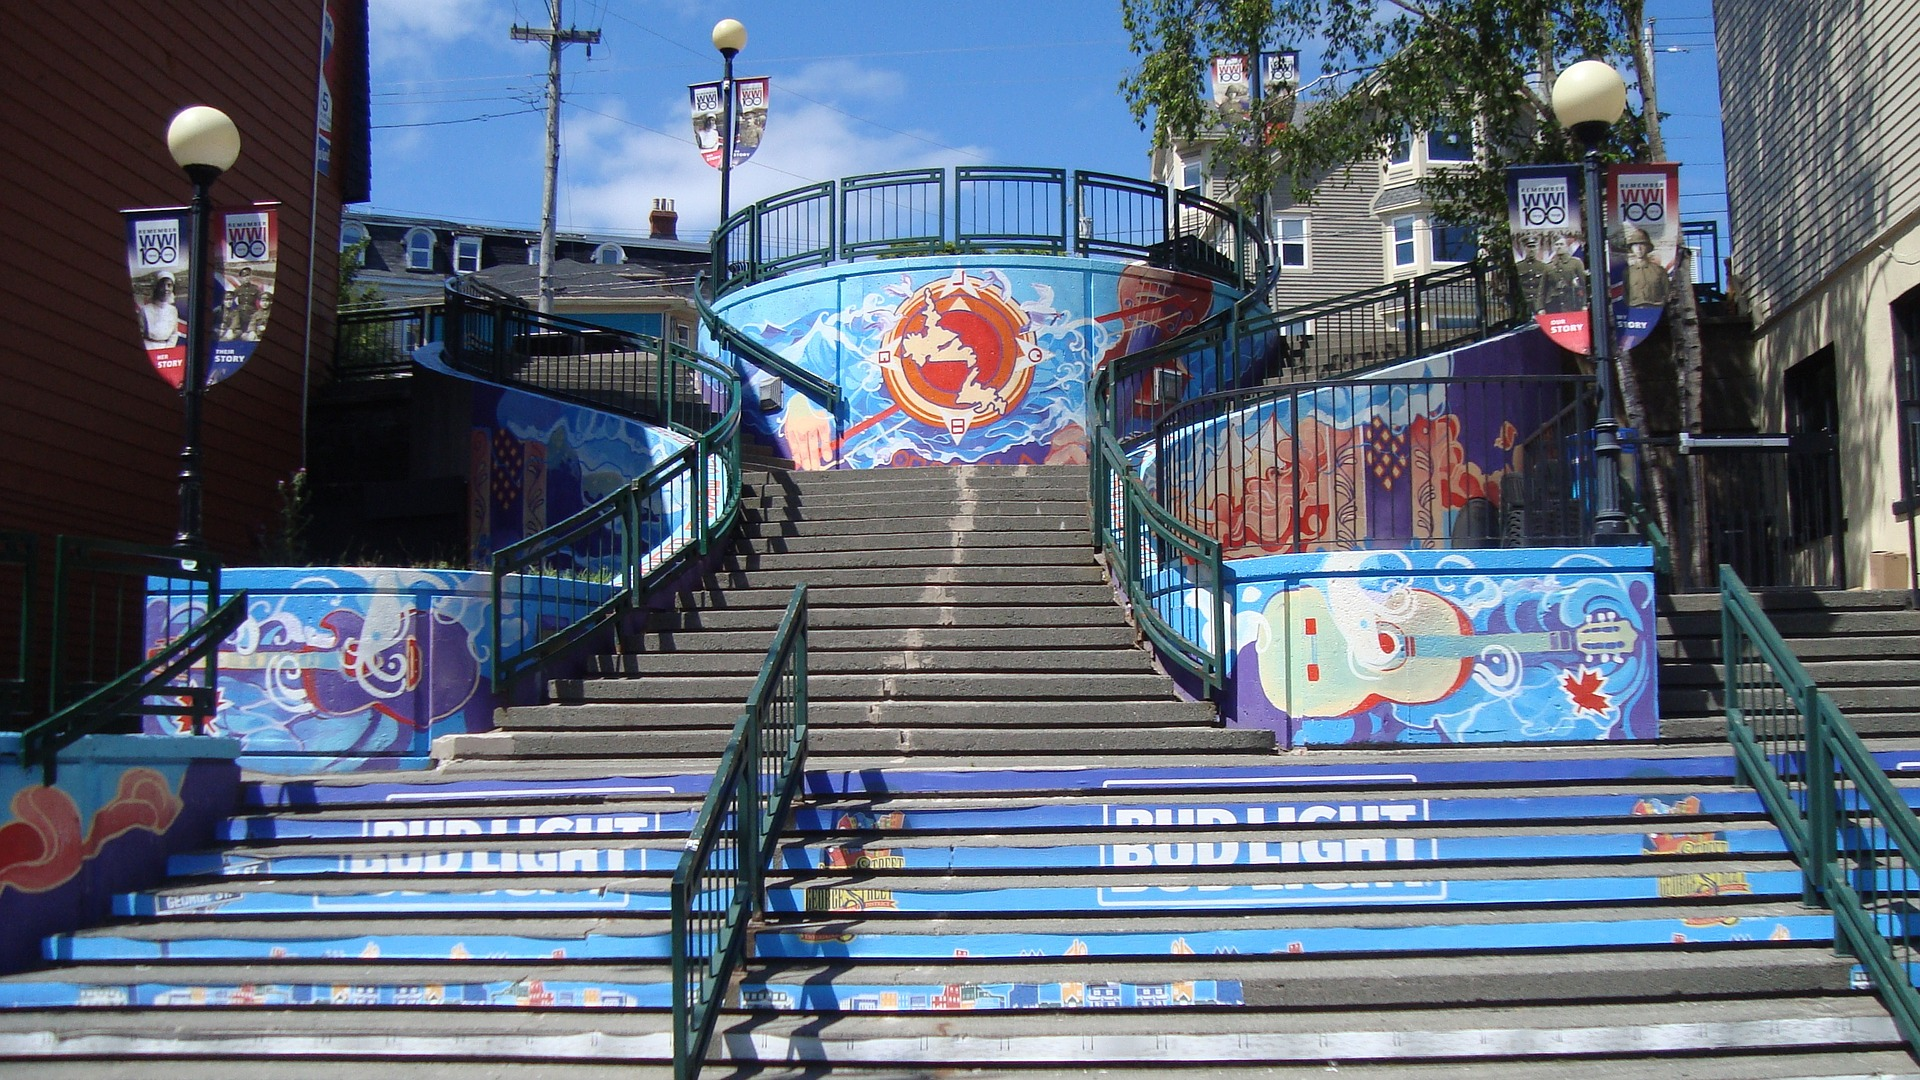 The steps on George Street